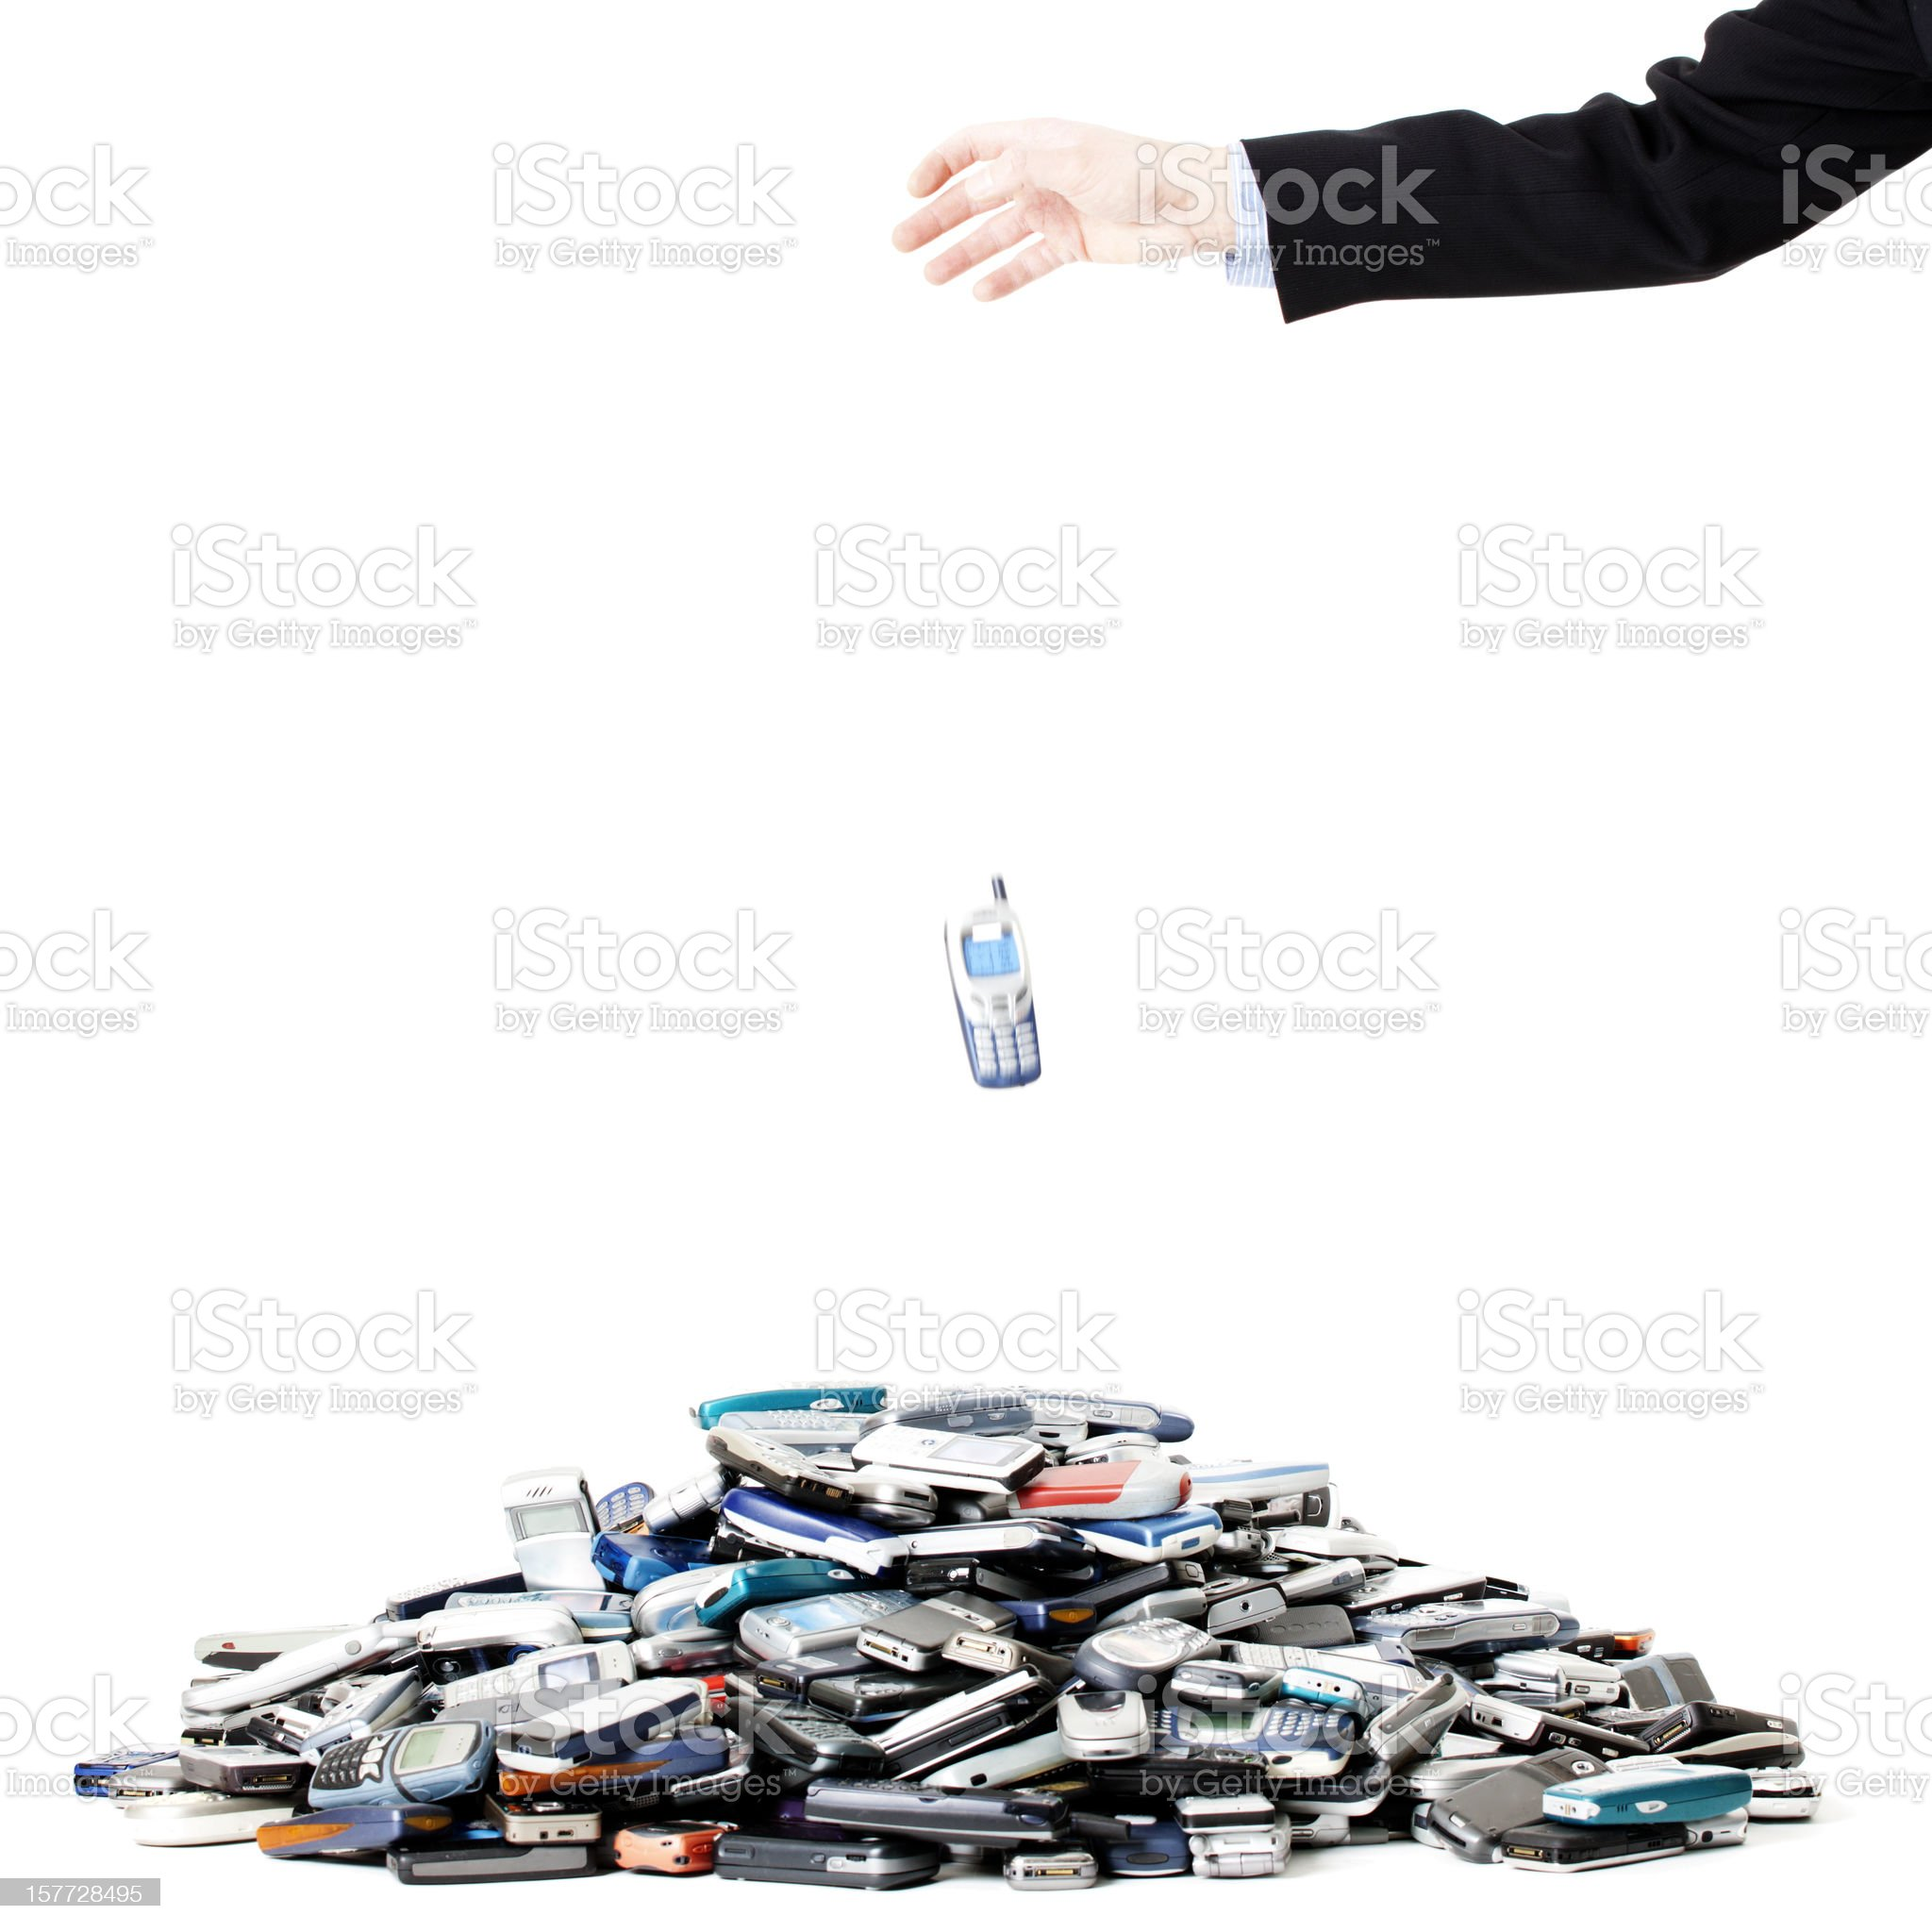 Cell phone recycling royalty-free stock photo